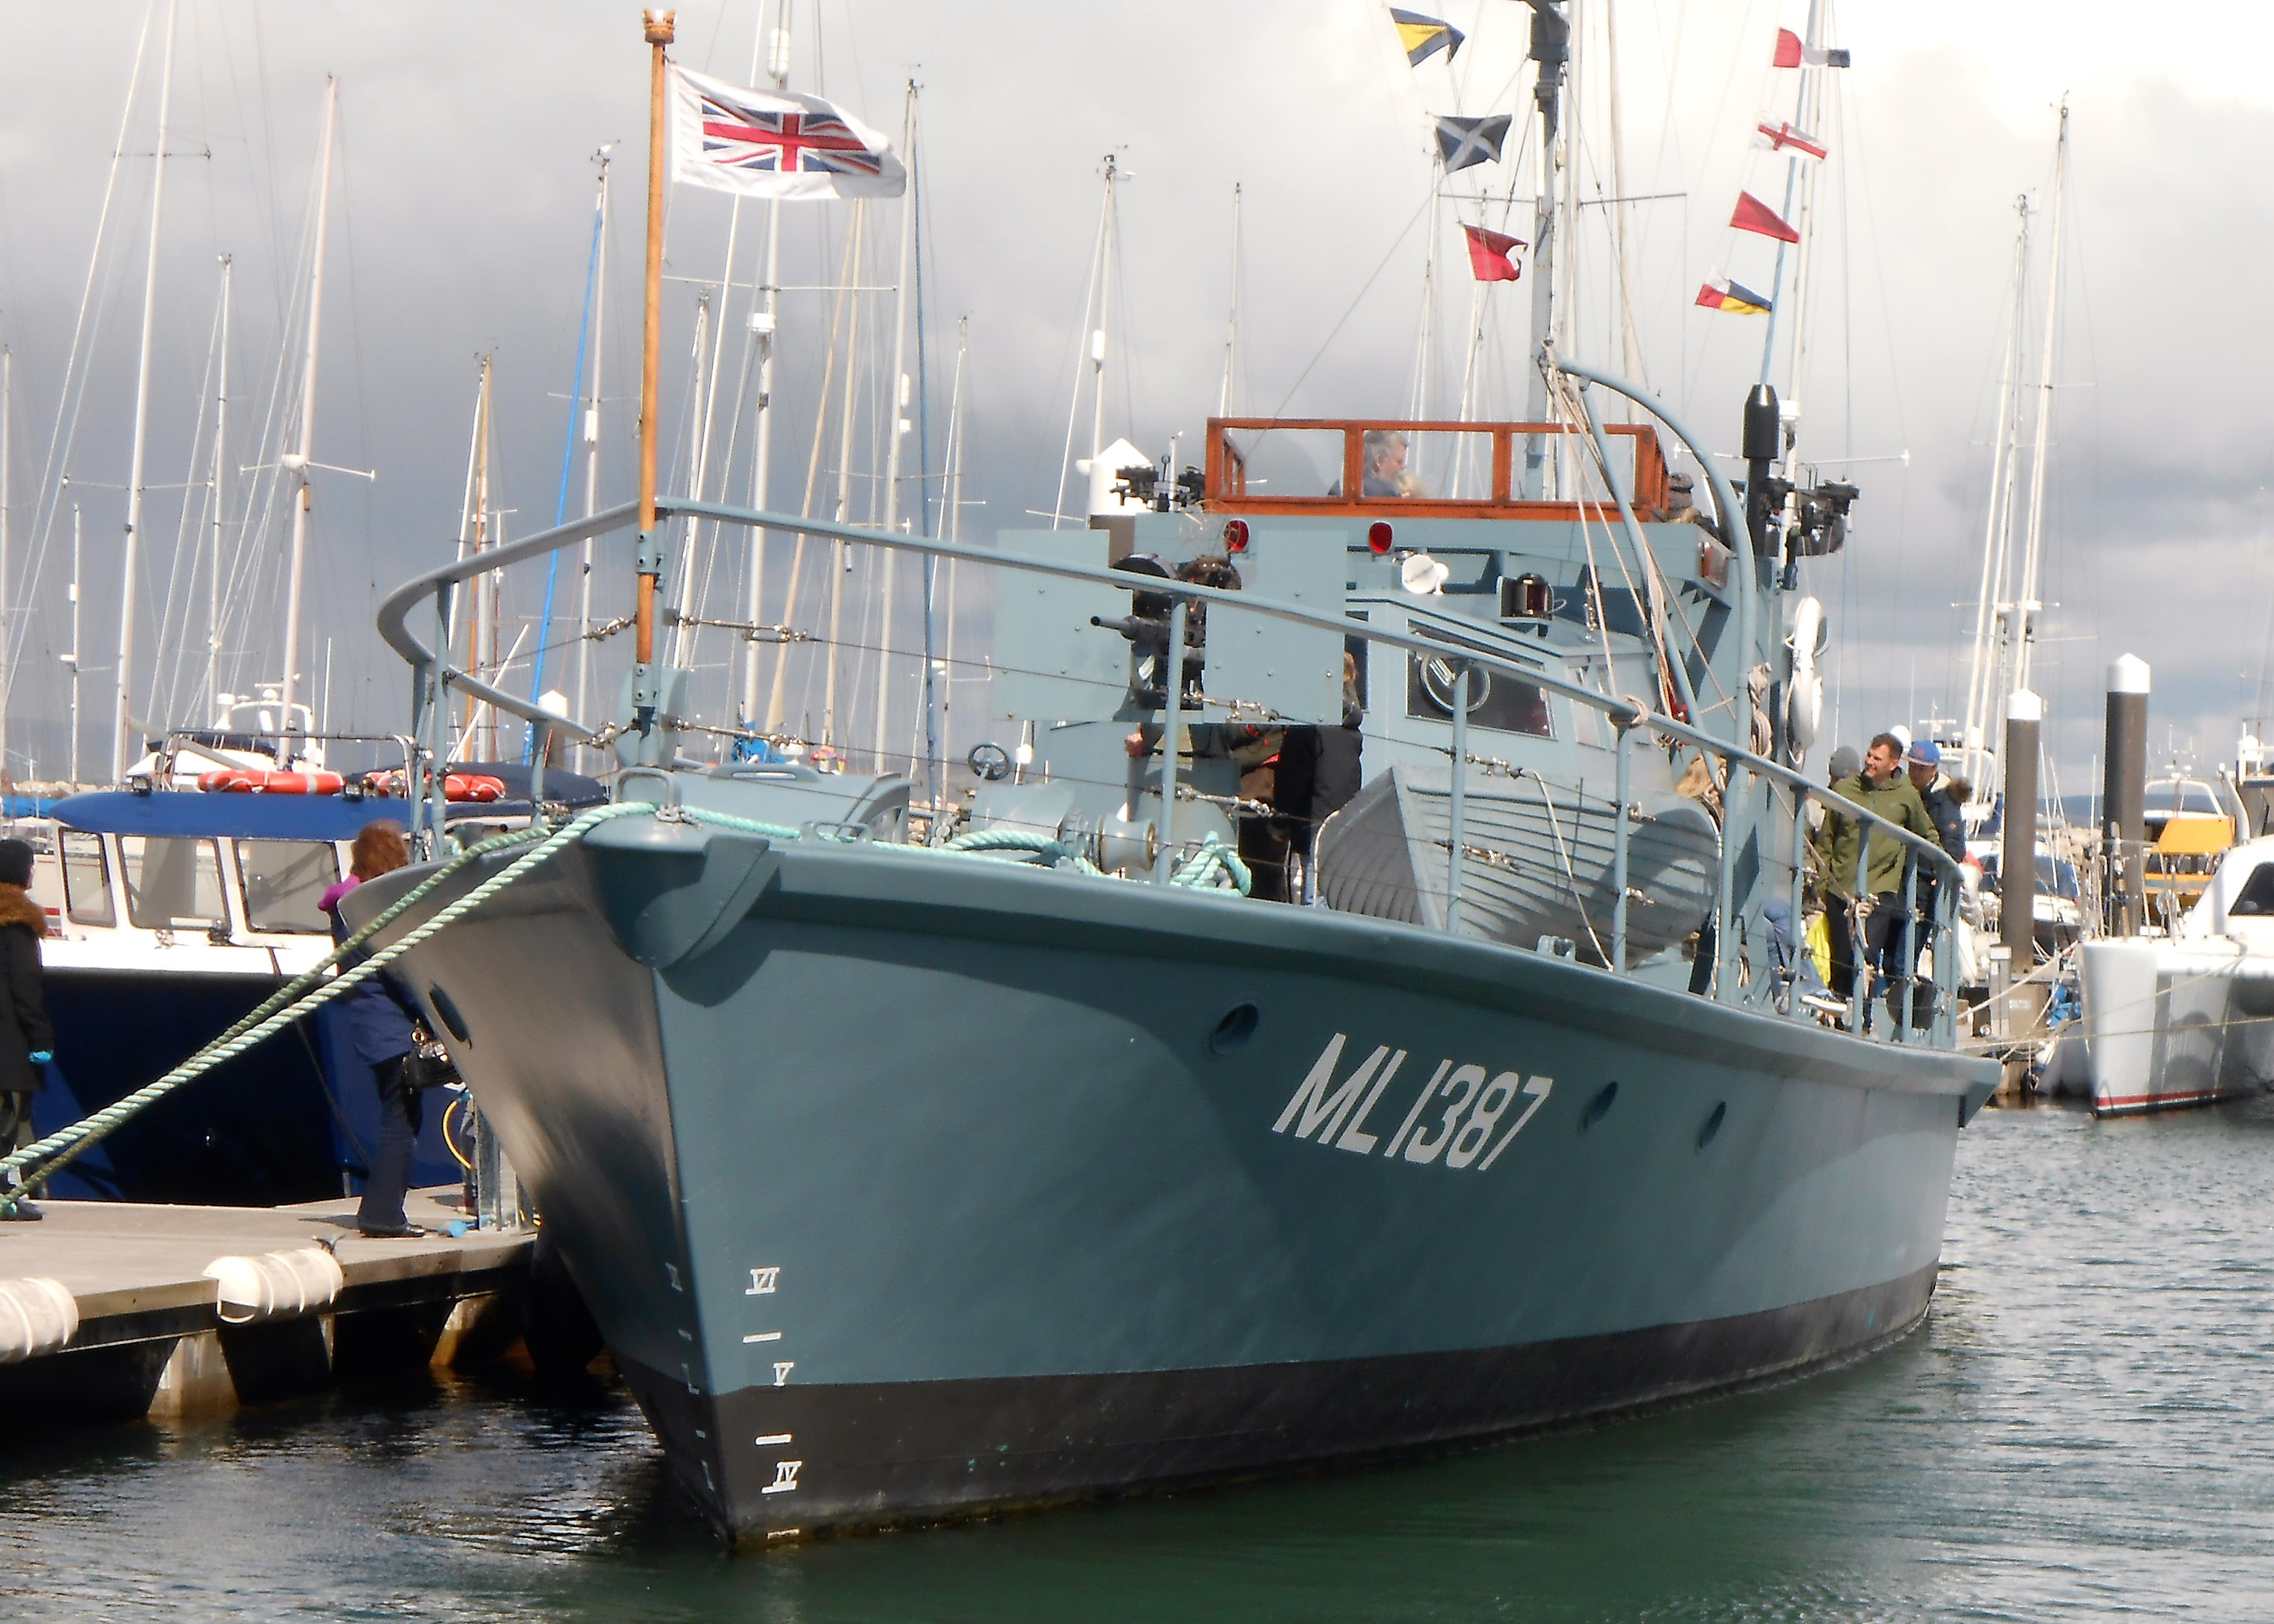 WW2 Vessel 'Medusa' open to the public in the Marina at Fish and Ships 2016